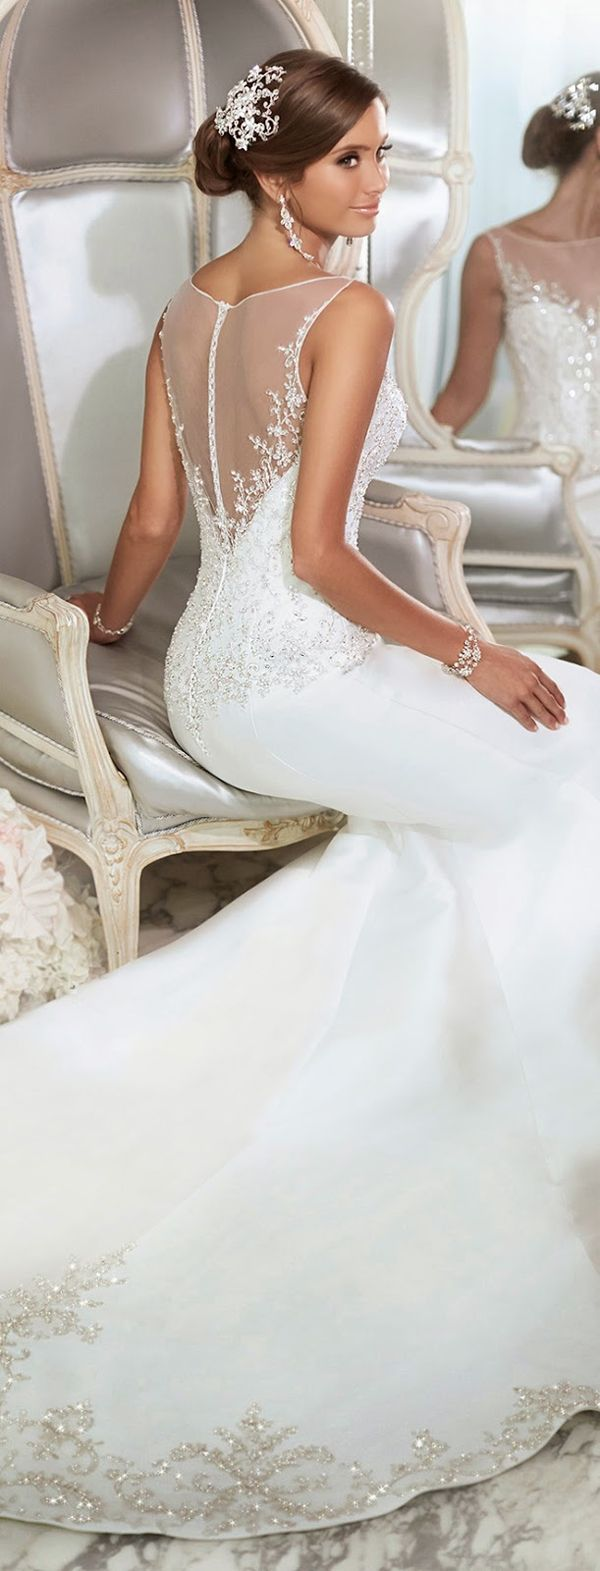 Debb, you have to click this link and check out these gowns!